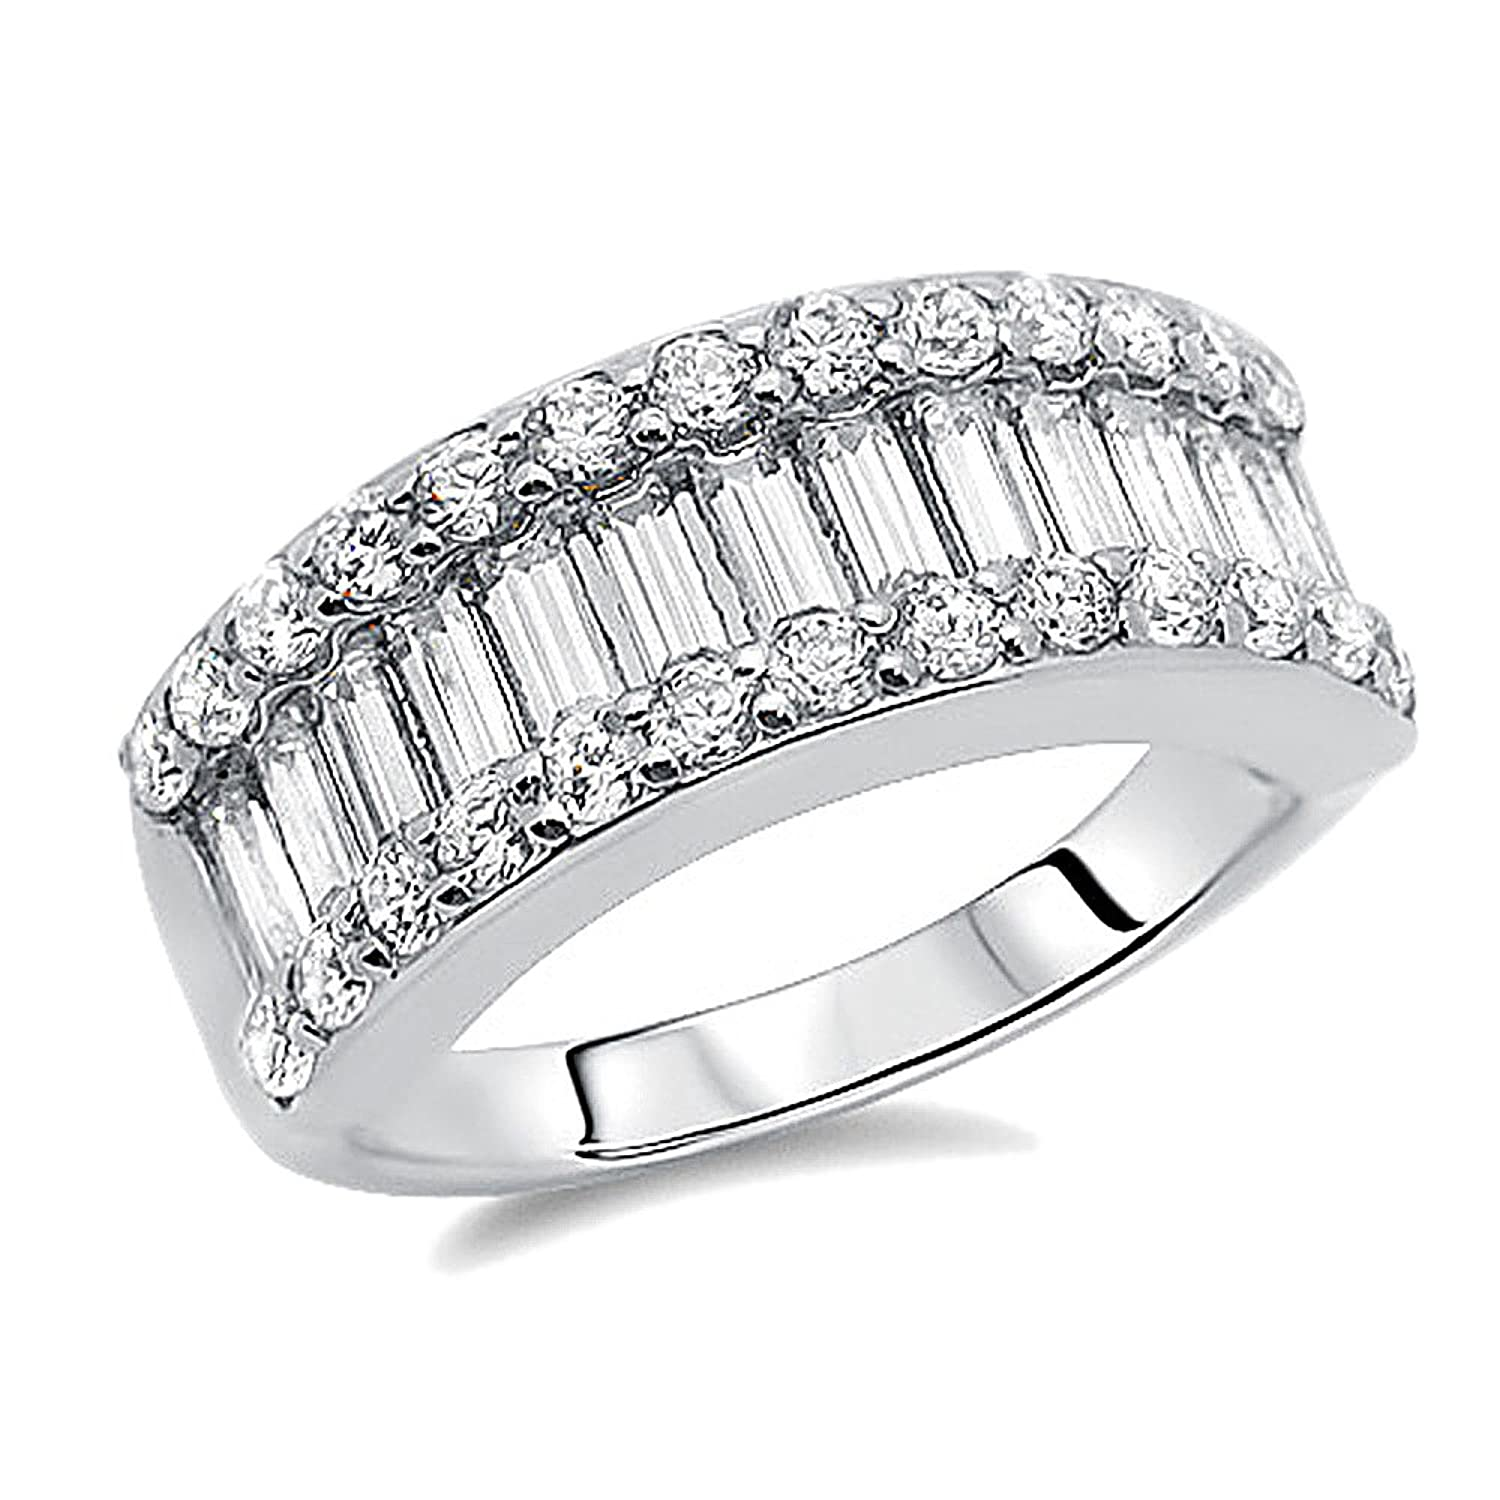 baguette wedding diamond cut bands platinum product roberts band fairfax